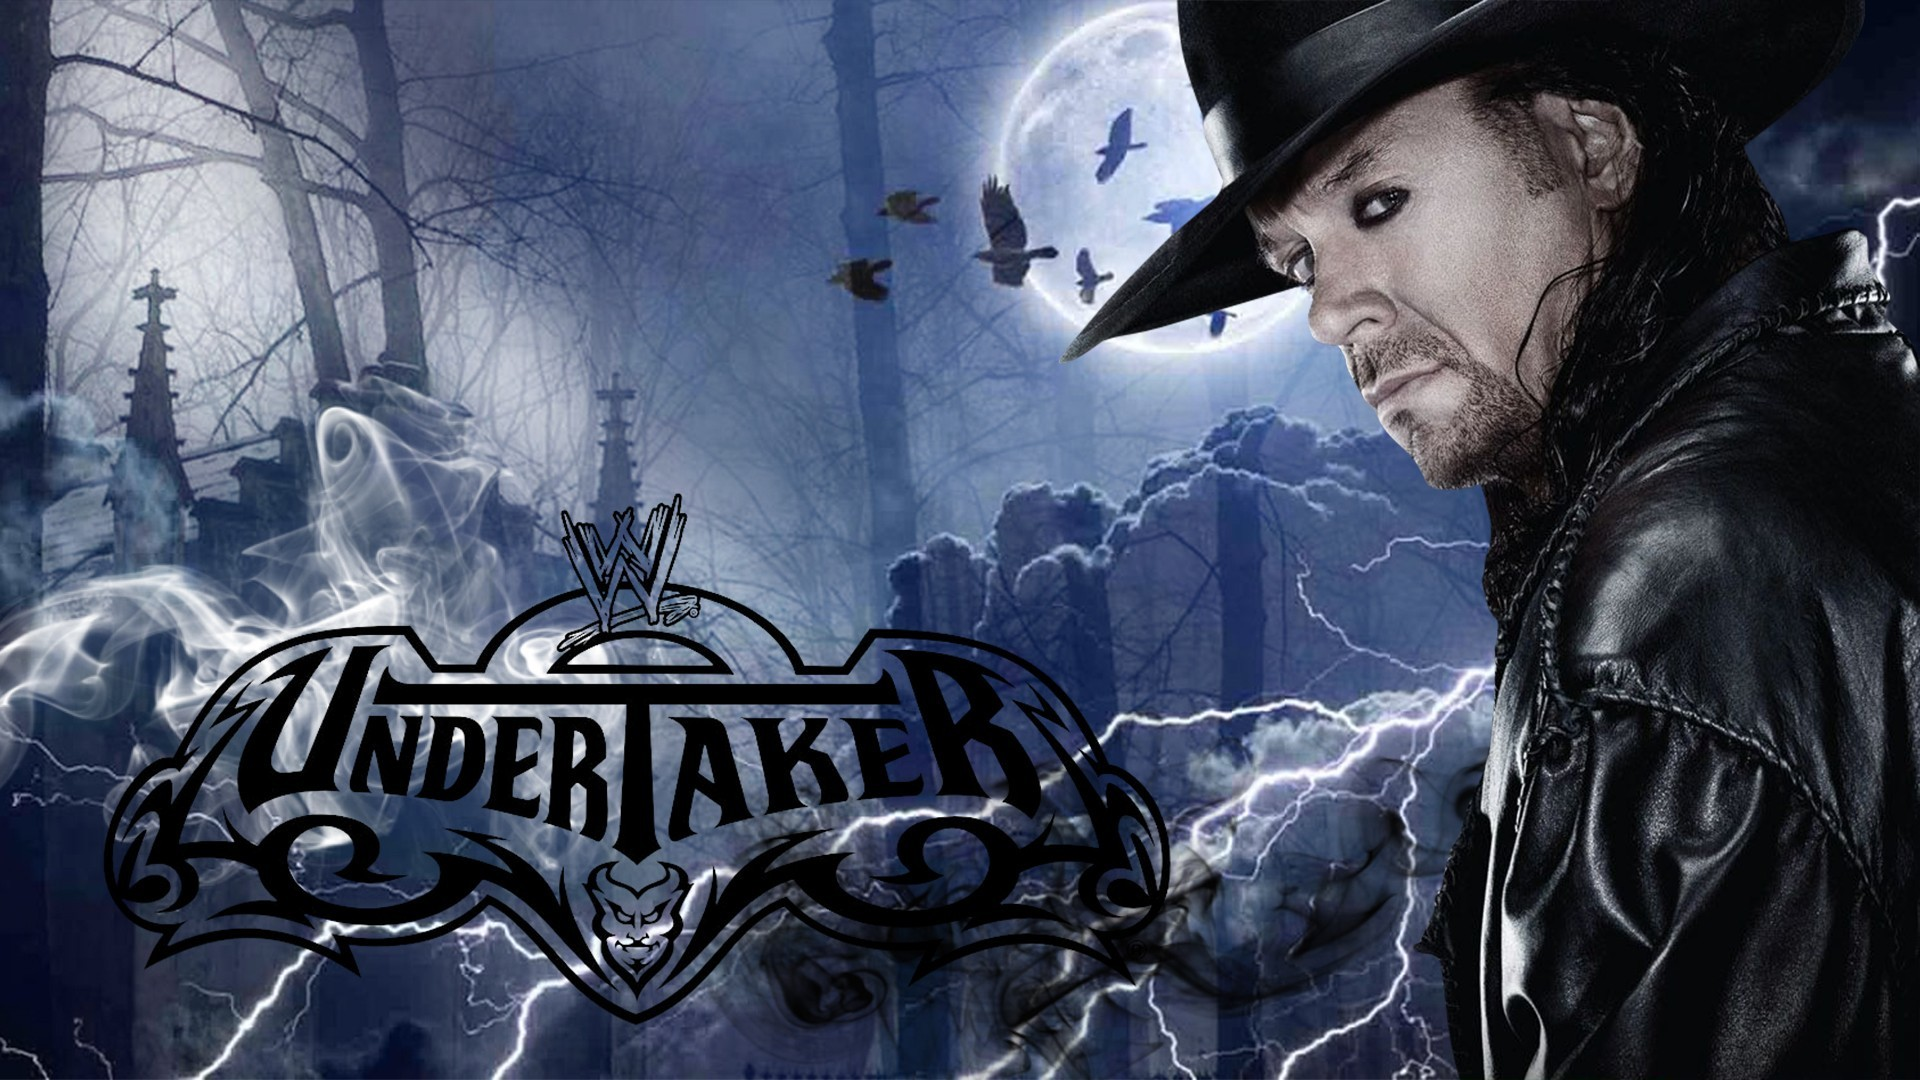 1920x1080  Undertaker Wallpaper #10. You can download the high-resolution  image here